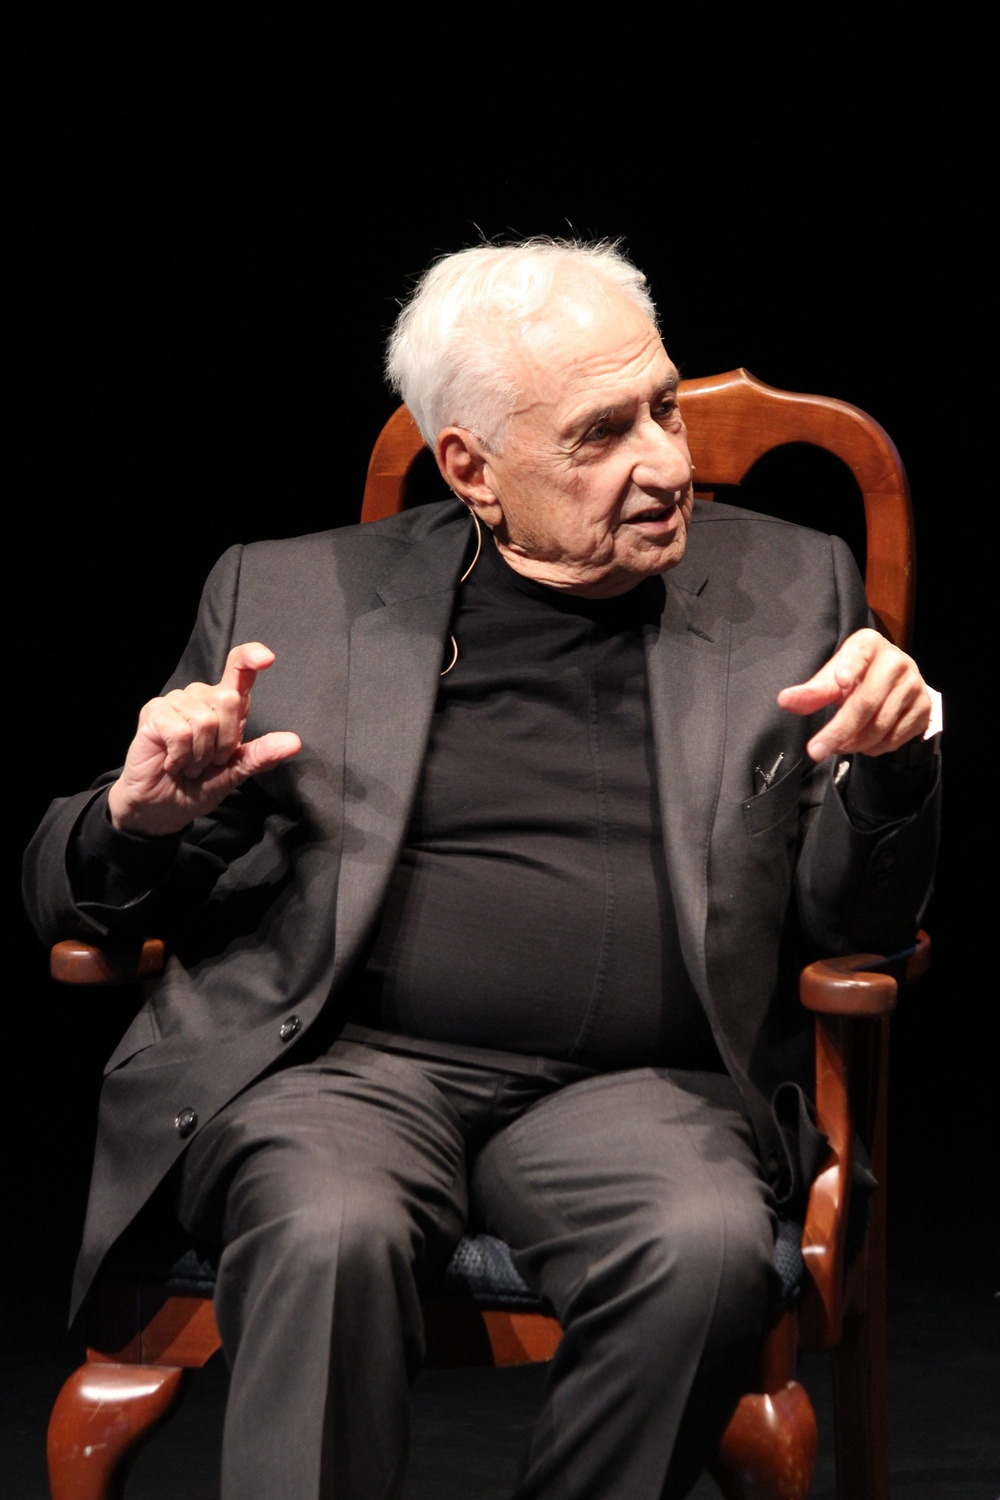 Architect Frank O. Gehry speaks with moderator John A. Lithgow '67 at the 2016 Harvard Arts Medal Ceremony in Farkas Hall. Harvard University President Drew G. Faust presented Gehry with the medal for his renowned work in architecture.